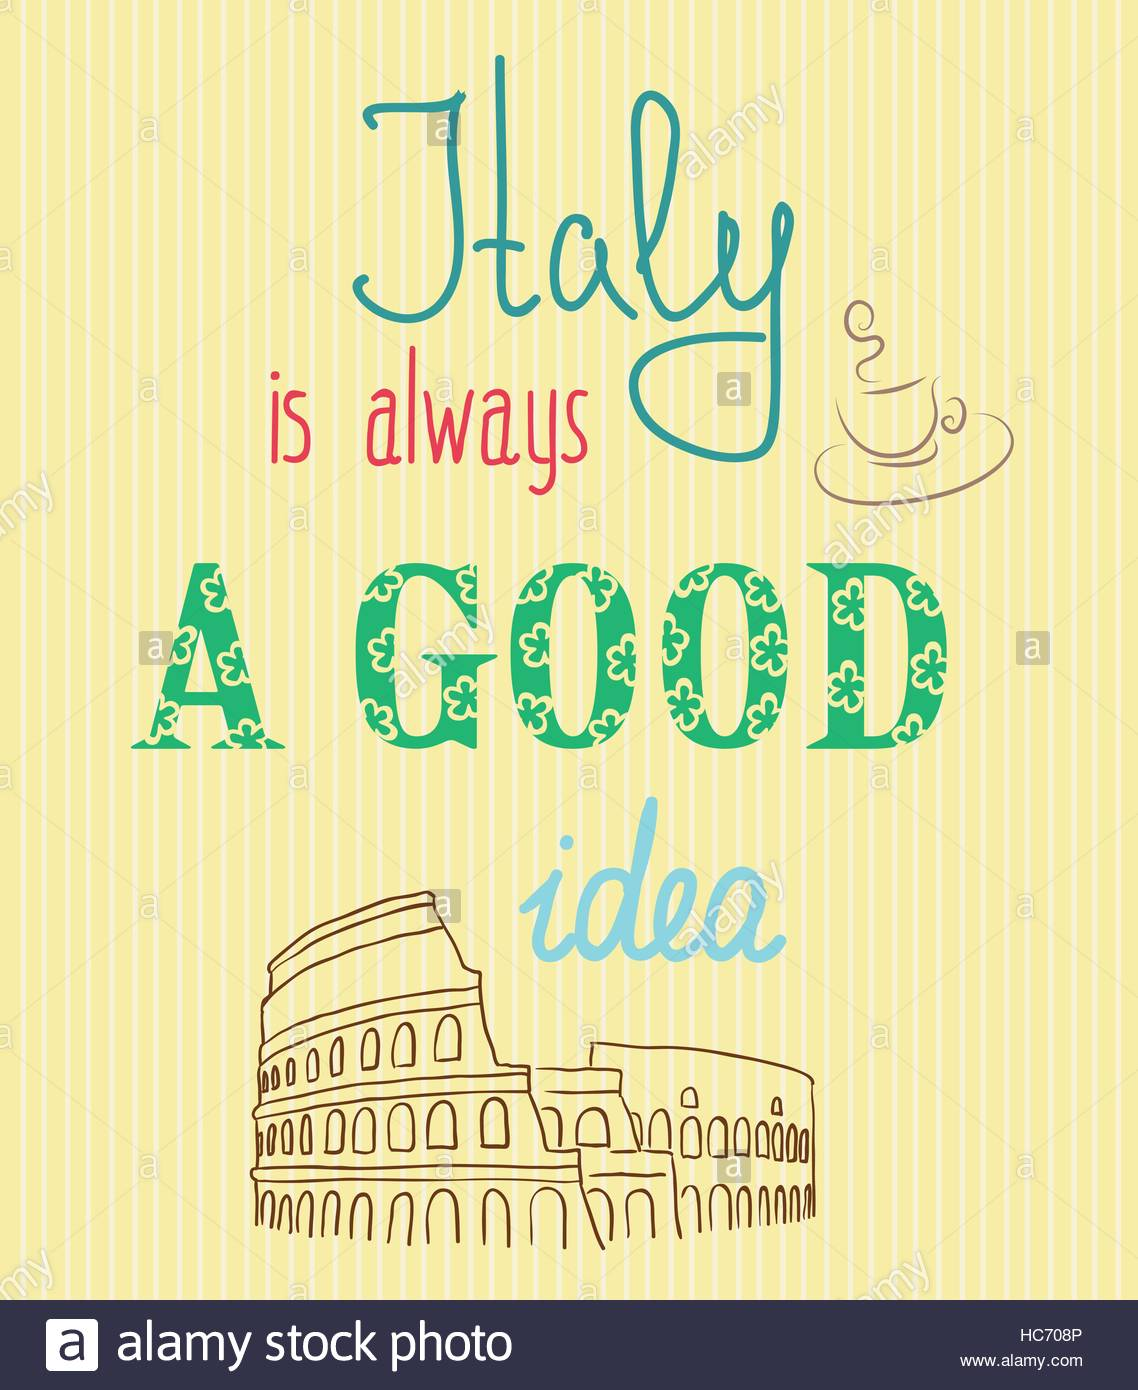 Italy Quotes Vintage Typographic Background With Motivational Quotes Italy Is